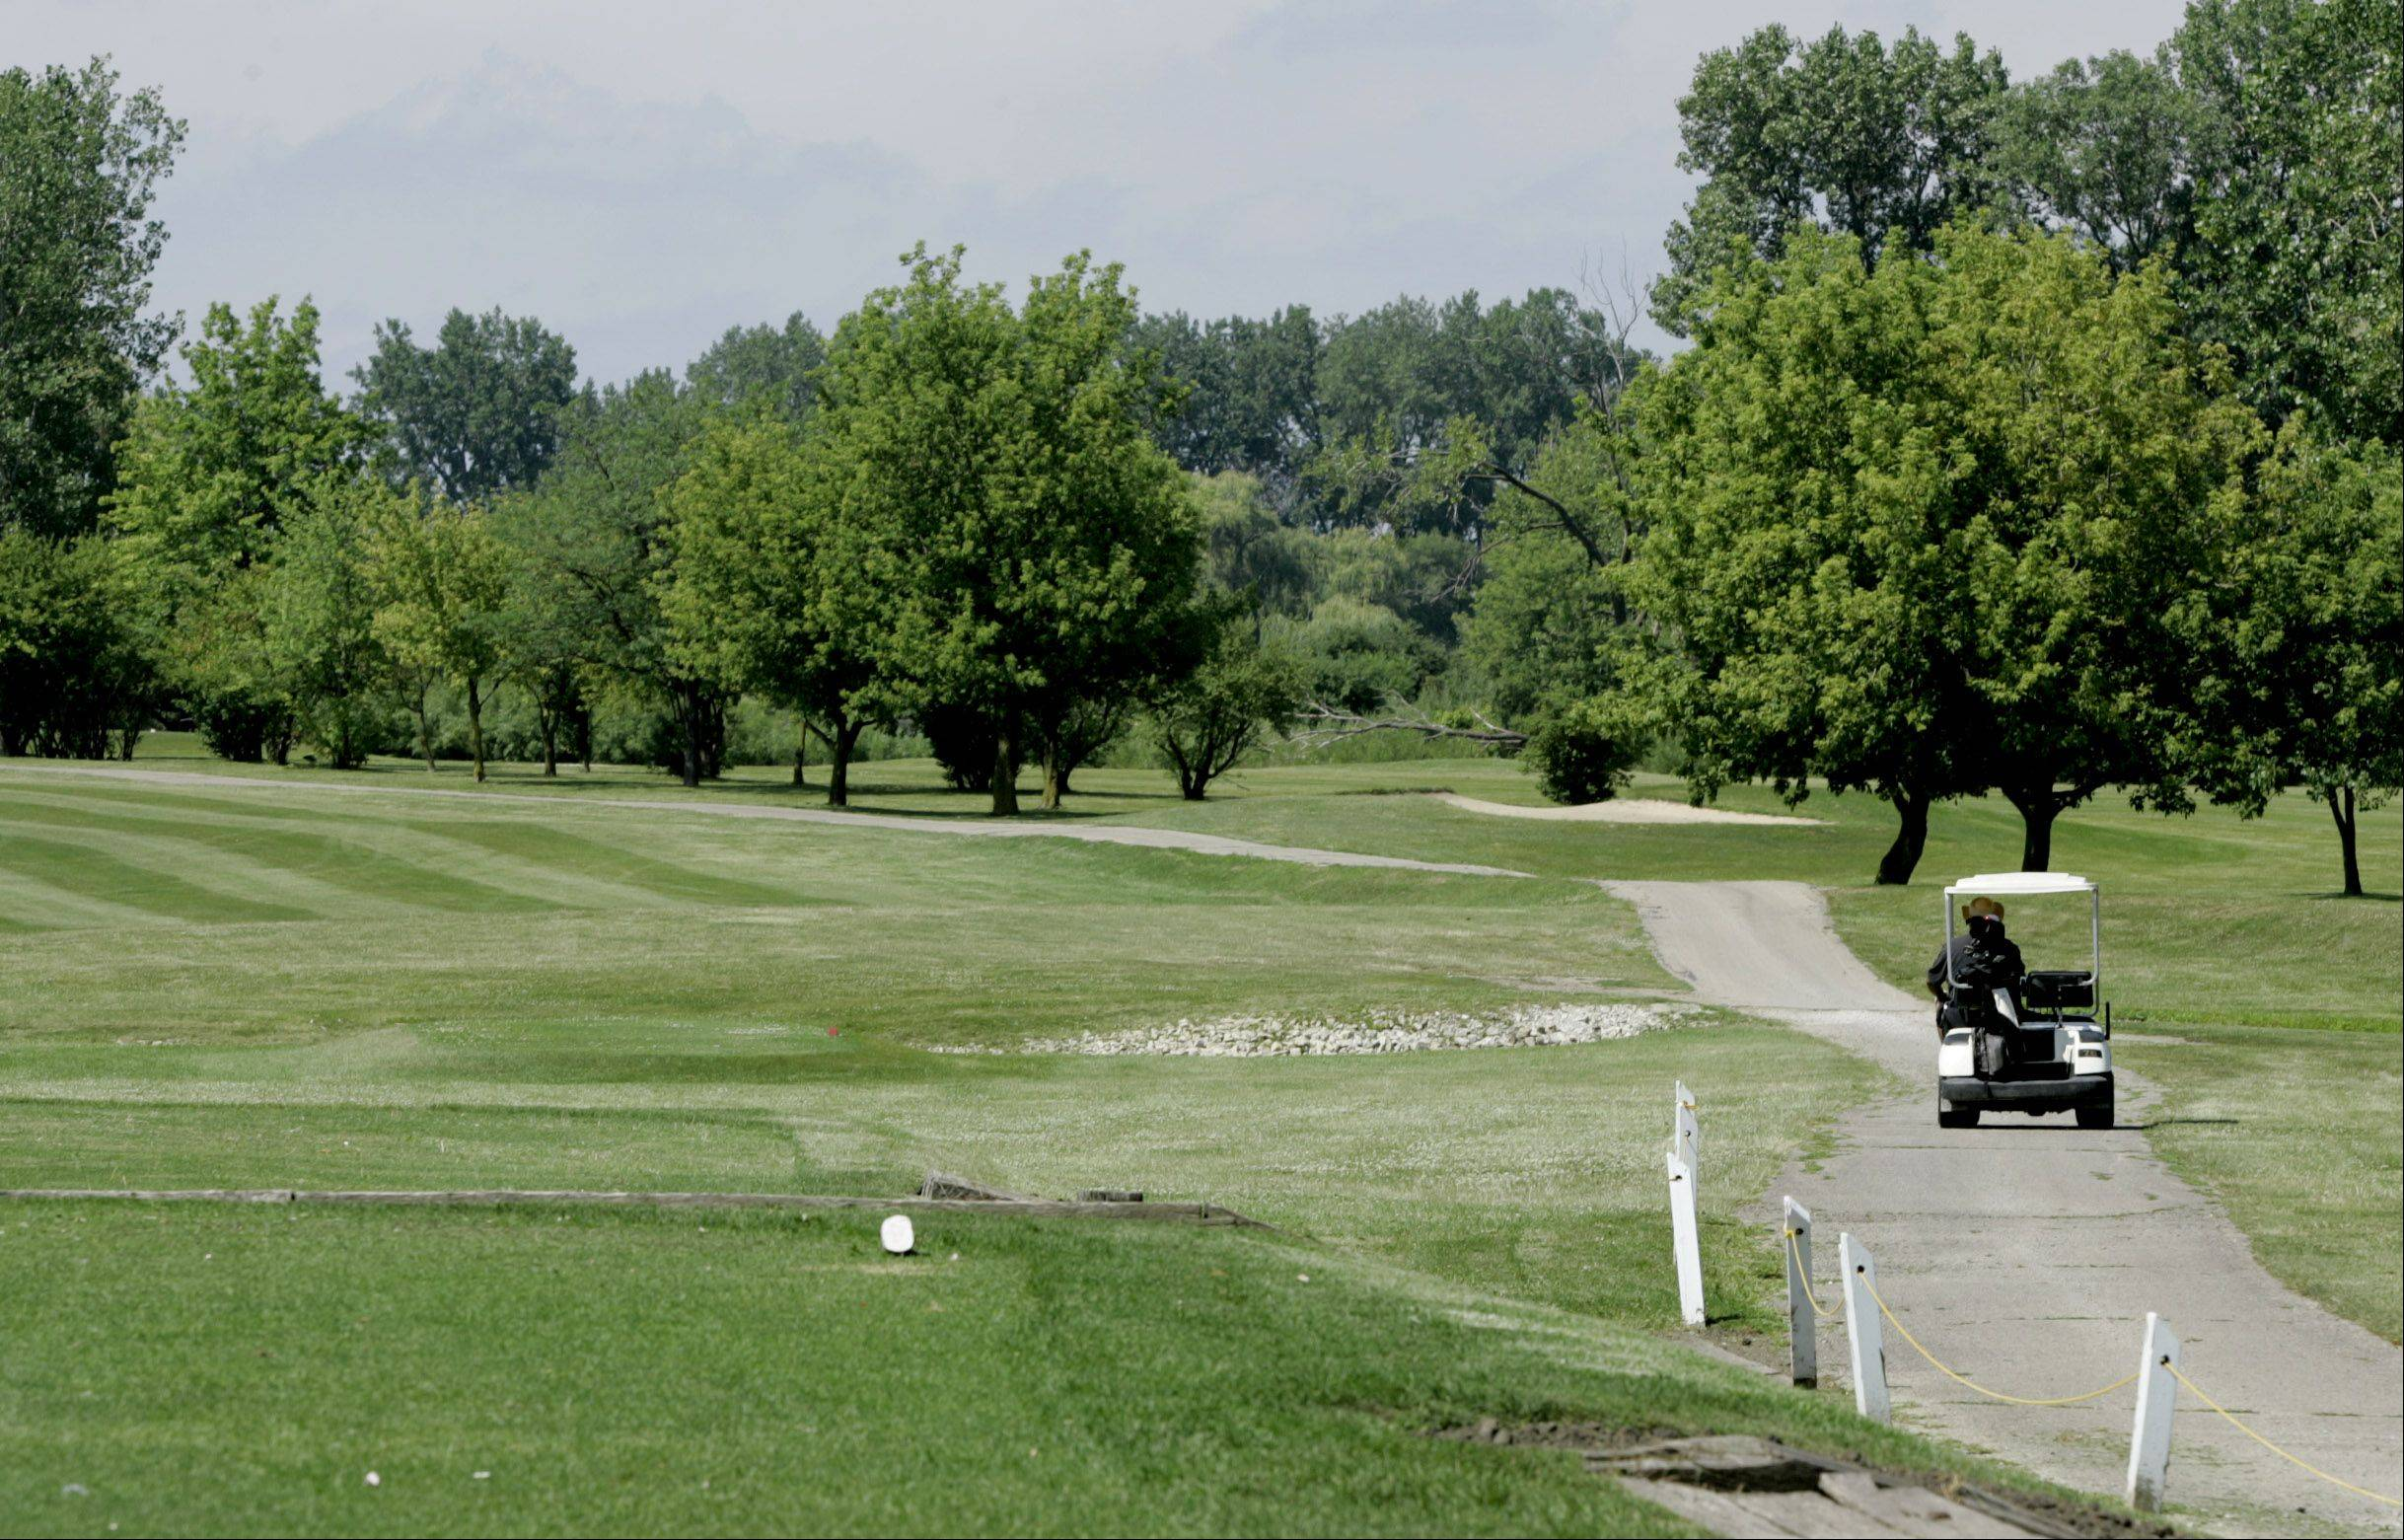 Legal fight over Naperville golf course continues